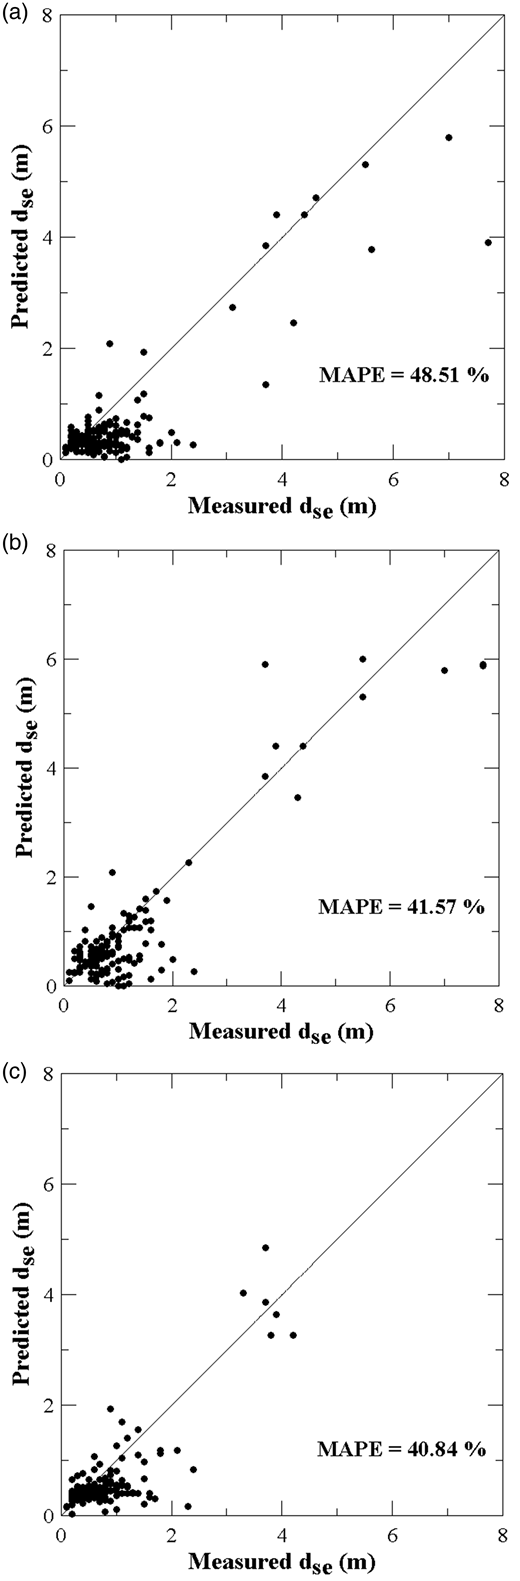 Applications to field data when the laboratory data are used for training: (a) without data quality assessment, (b) screened by EDM, and (c) screened by MDM.